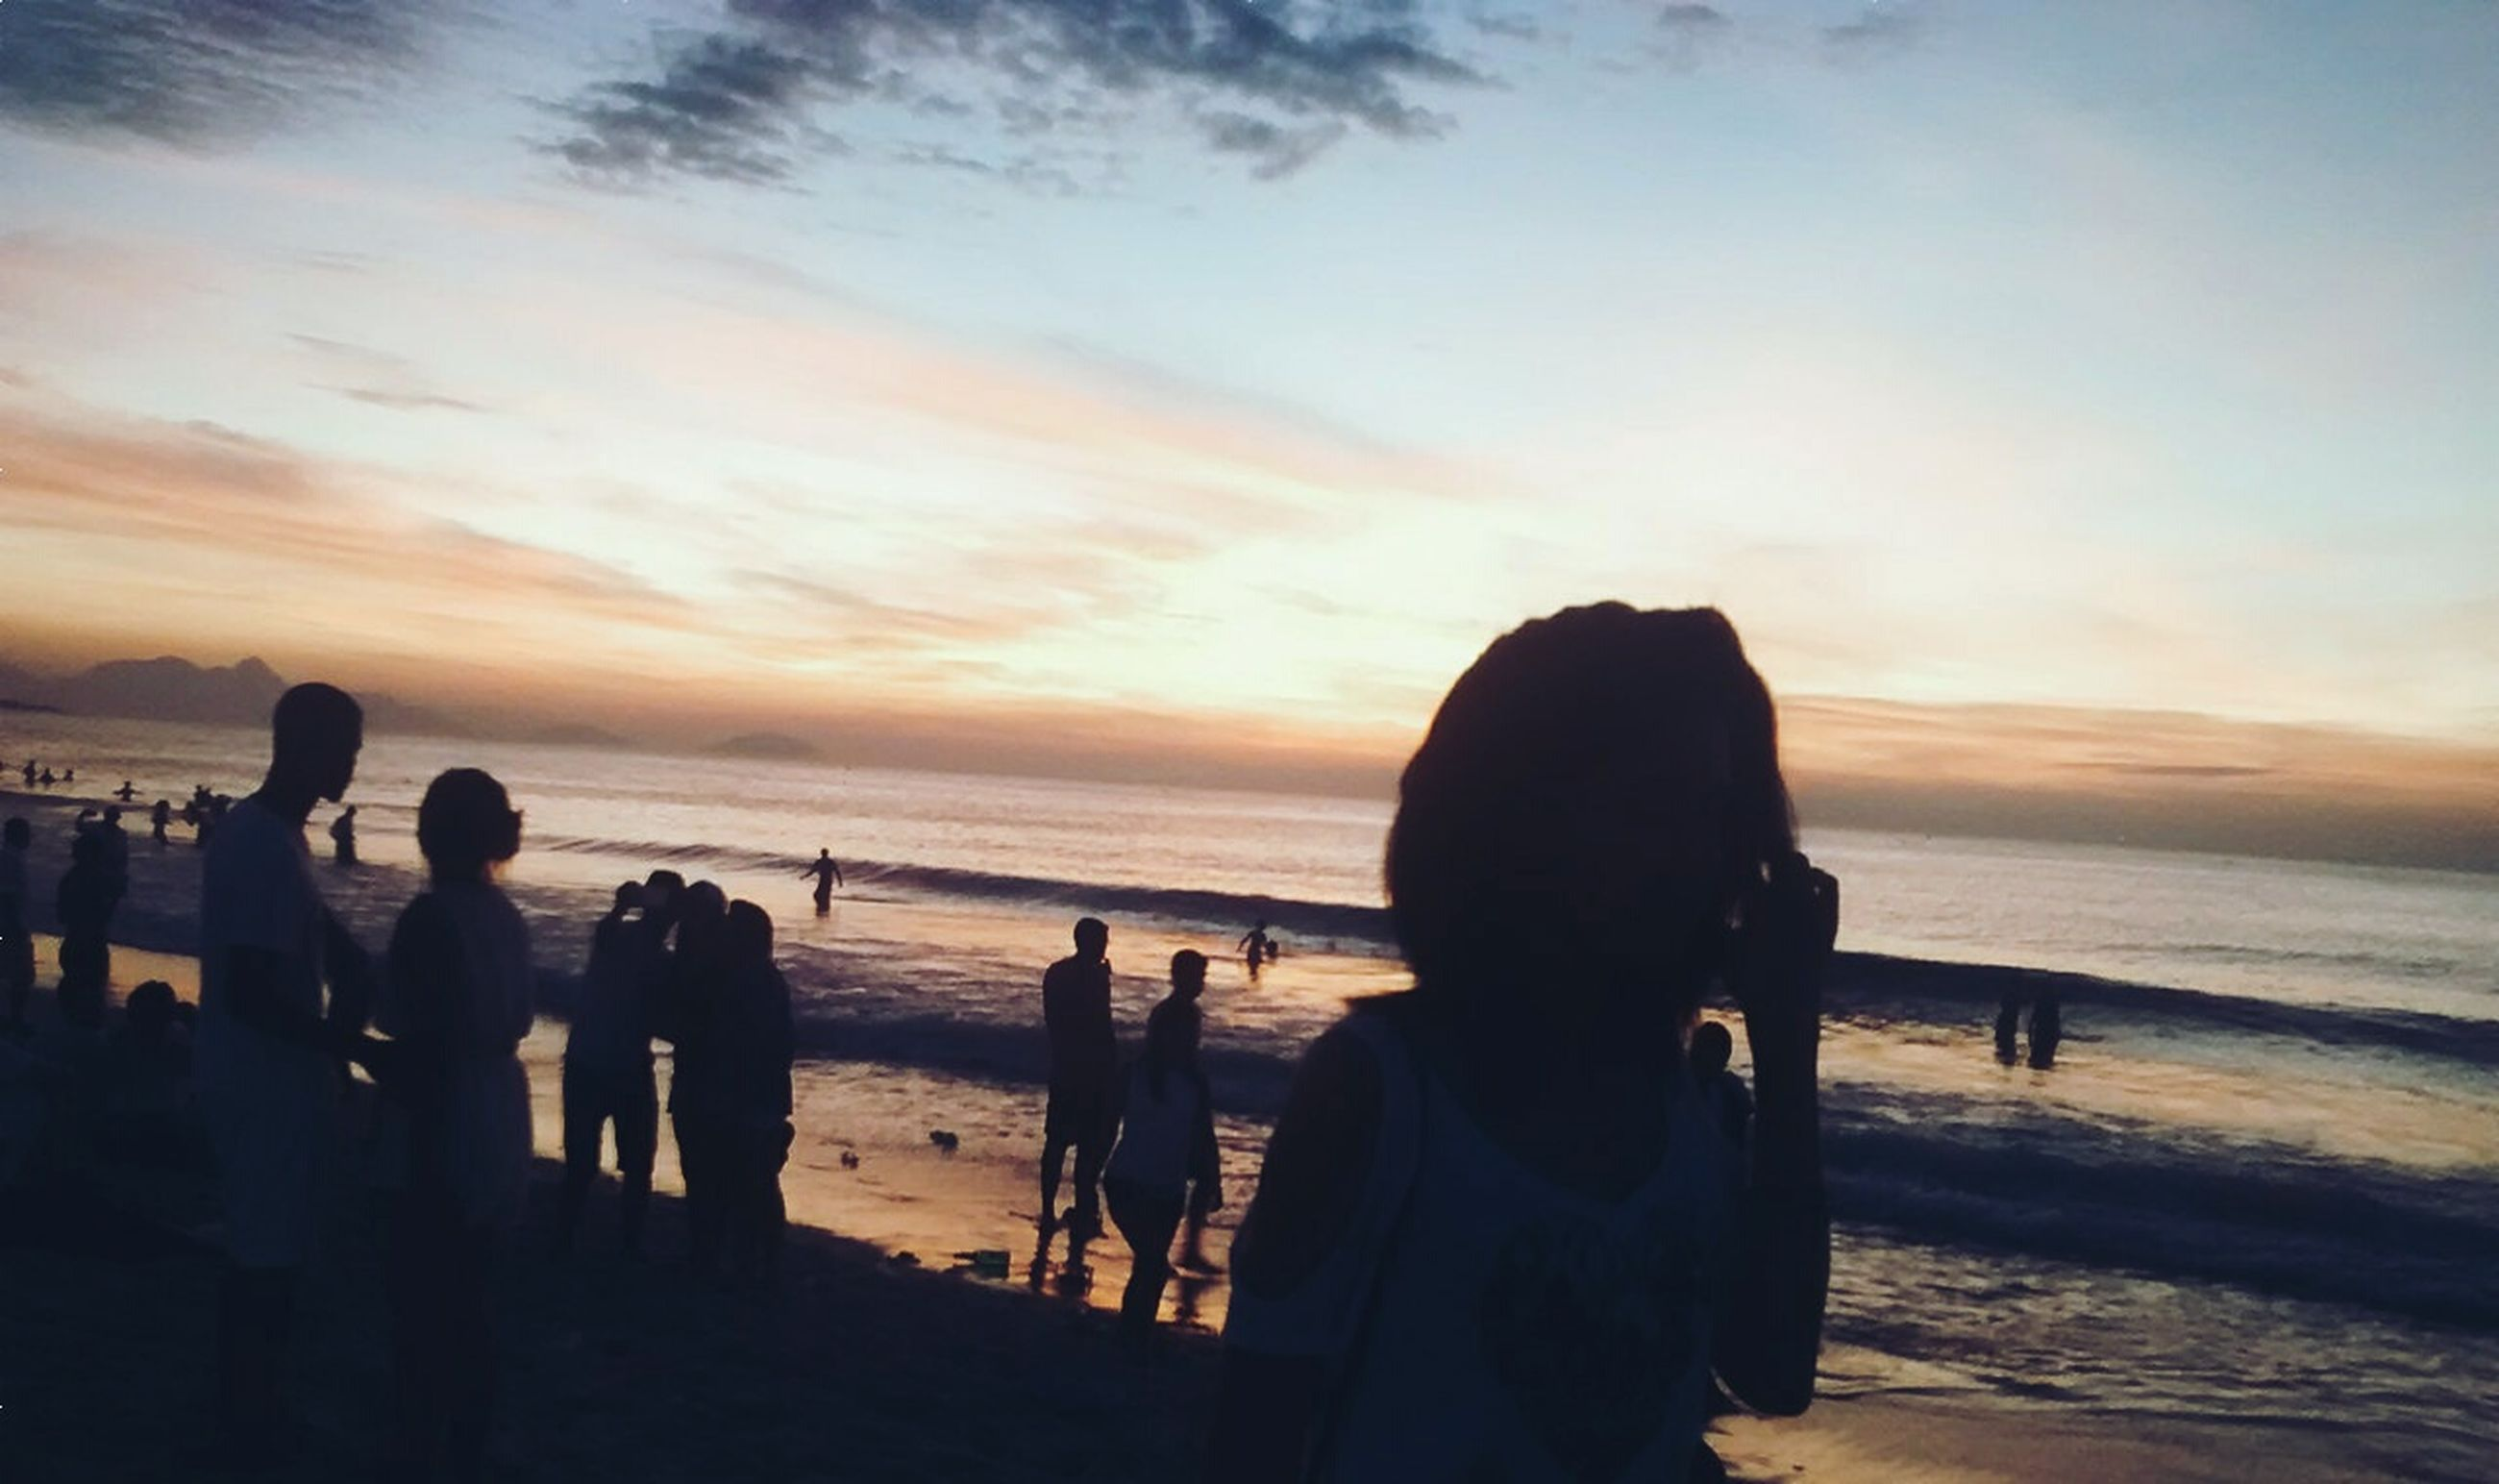 sea, horizon over water, beach, sunset, water, shore, sky, silhouette, lifestyles, leisure activity, men, scenics, beauty in nature, person, vacations, orange color, sand, nature, tranquil scene